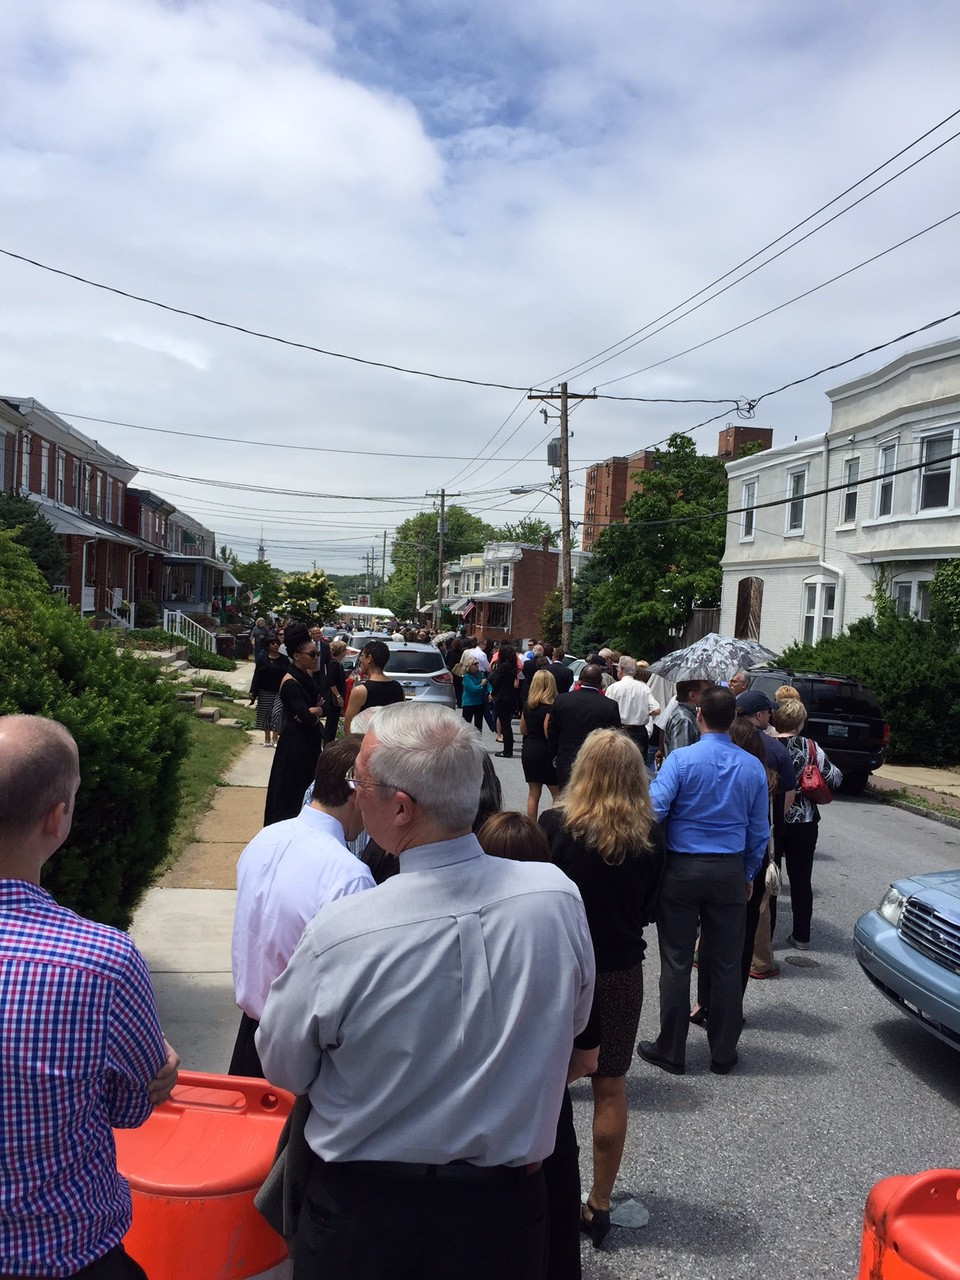 Throngs of people lined the streets of Wilmington, DE to pay their respects to the Biden family. (Photo: Megan Smolenyak)